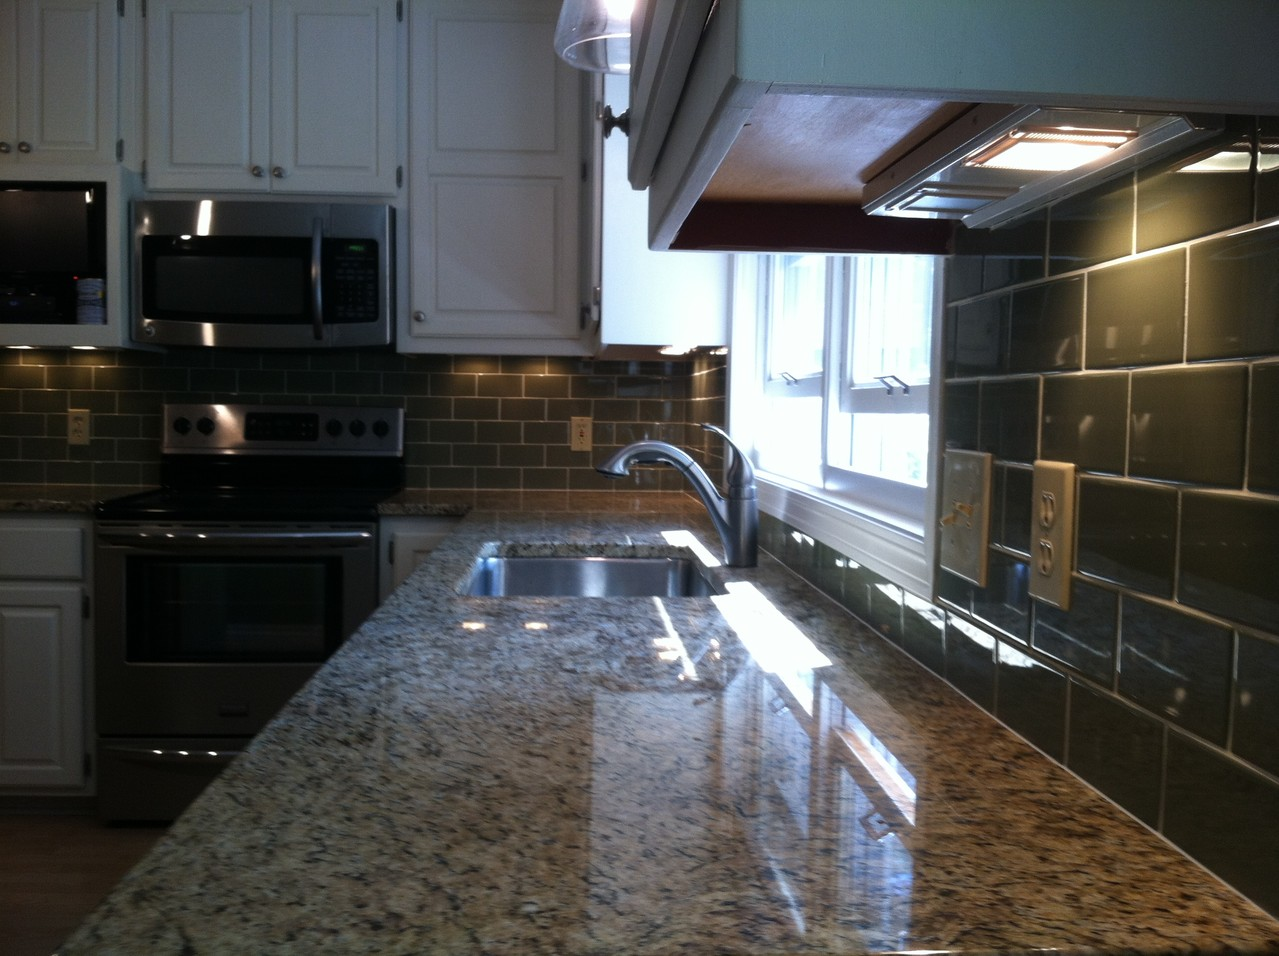 New granite countertops with ceramic tile backsplash